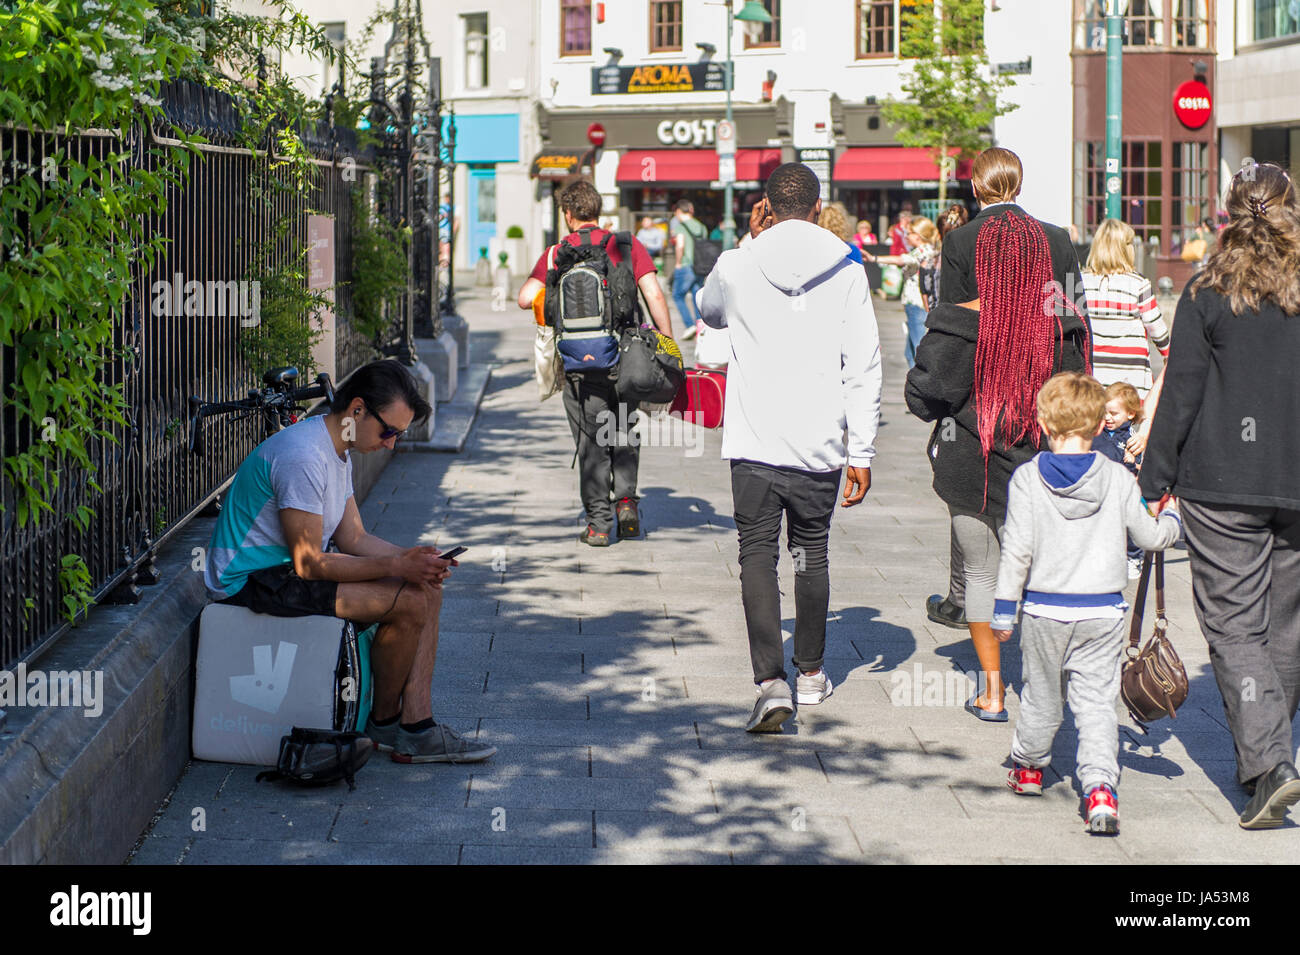 A Deliveroo Fast Food Delivery Rider uses his phone on a break in Cork, Ireland. - Stock Image